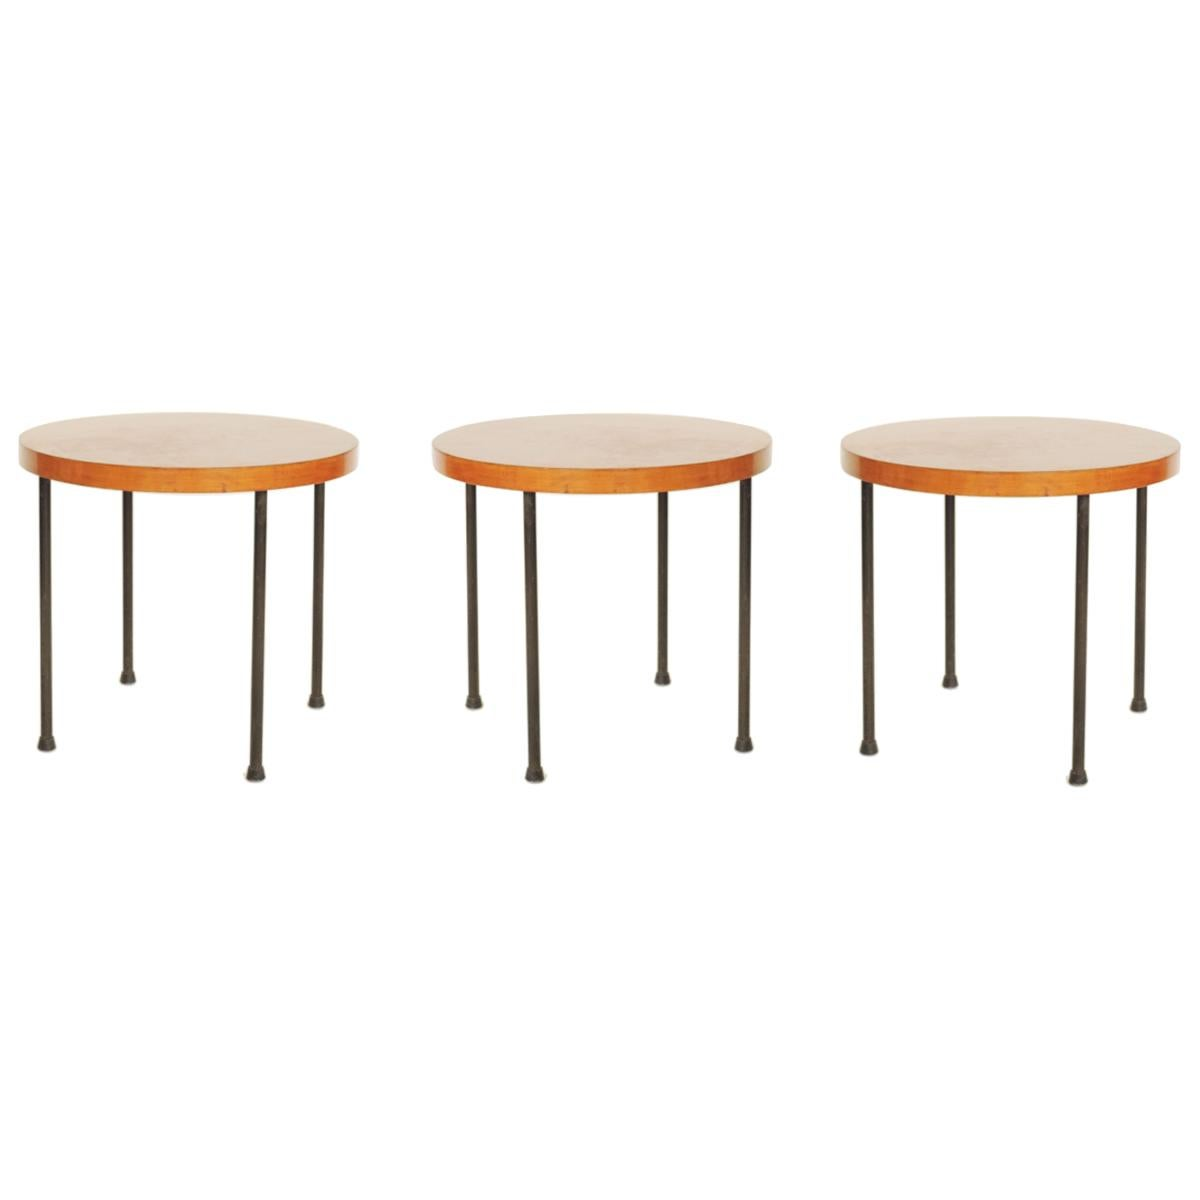 Set of Three Wood and Metal Side Tables France or Italy, 1950s